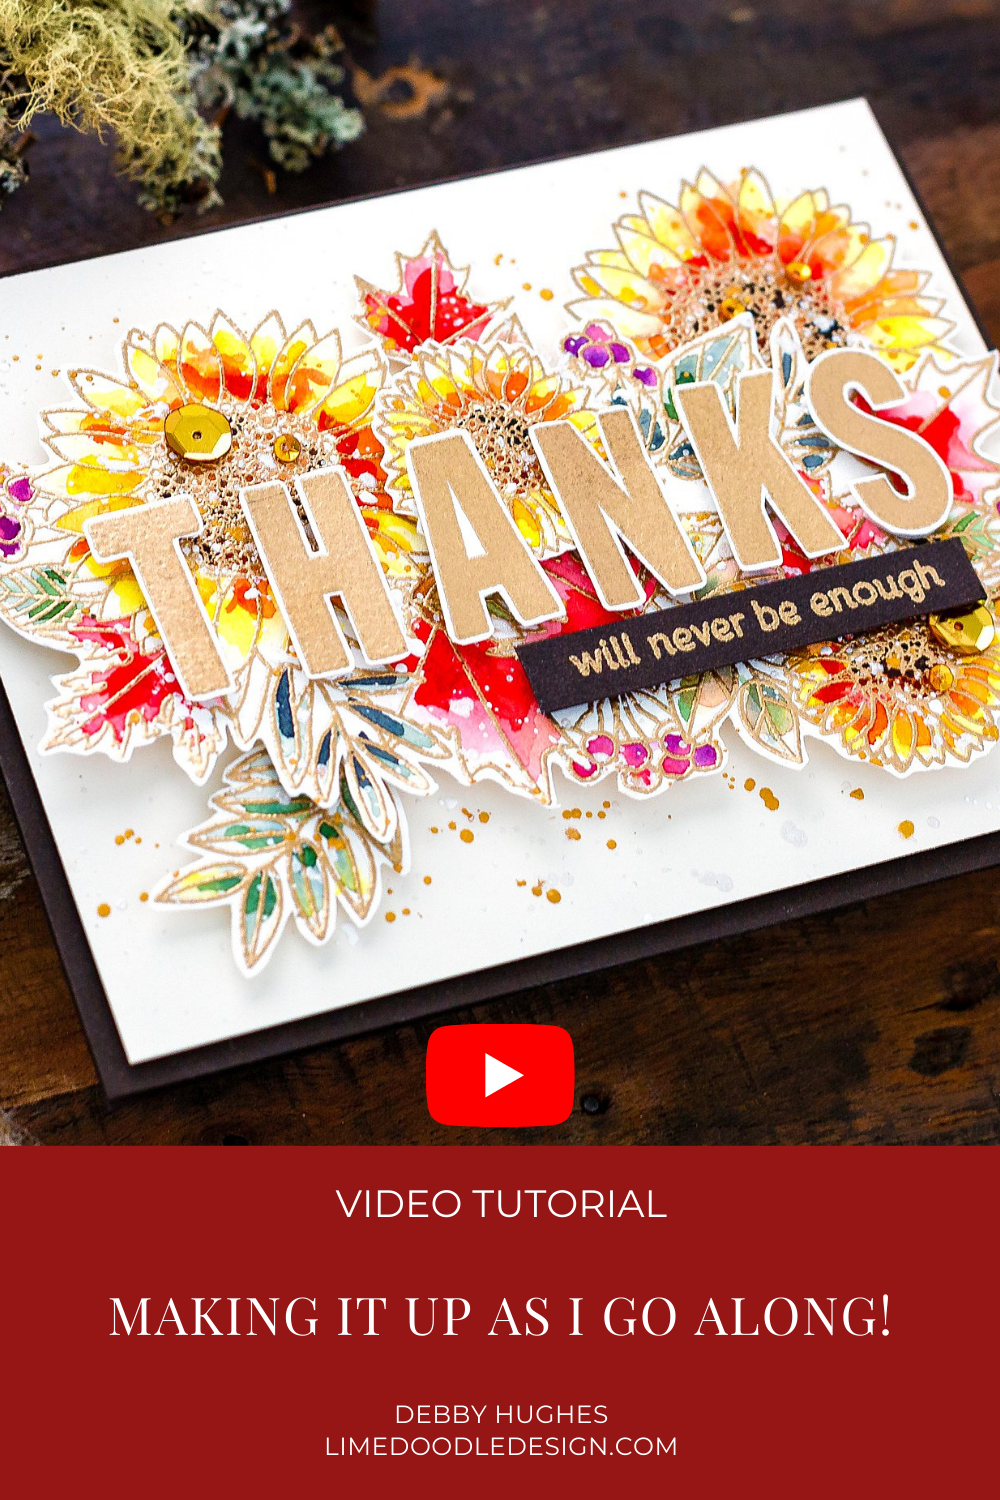 Video tutorial making it up as I go along to create this autumnal watercoloured handmade card. Heat embossing makes life so much easier when watercolouring! Homemade card by Debby Hughes #debbyhughes #limedoodledesign #handmadecards #cardmaking #cardmakingideas #cardmakingtechniques #cardmakingtutorials #handmadecardideas #watercolor #danielsmith #danielsmithwatercolors #watercolorarts #simonsaysstamp